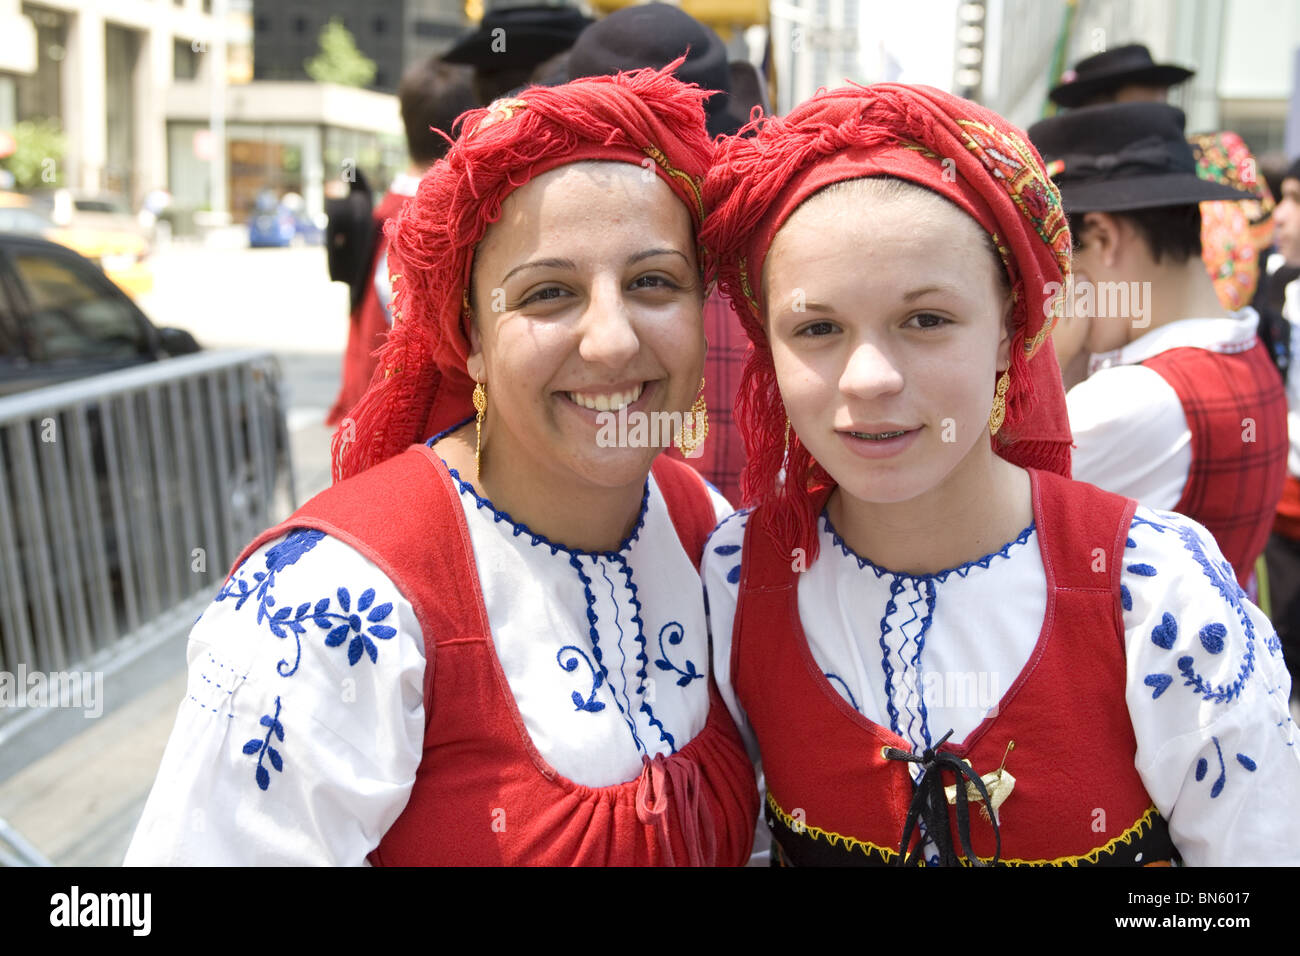 International Immigrants Parade, NYC: Mother and daughter in folk dress representing the Portuguese community in - Stock Image